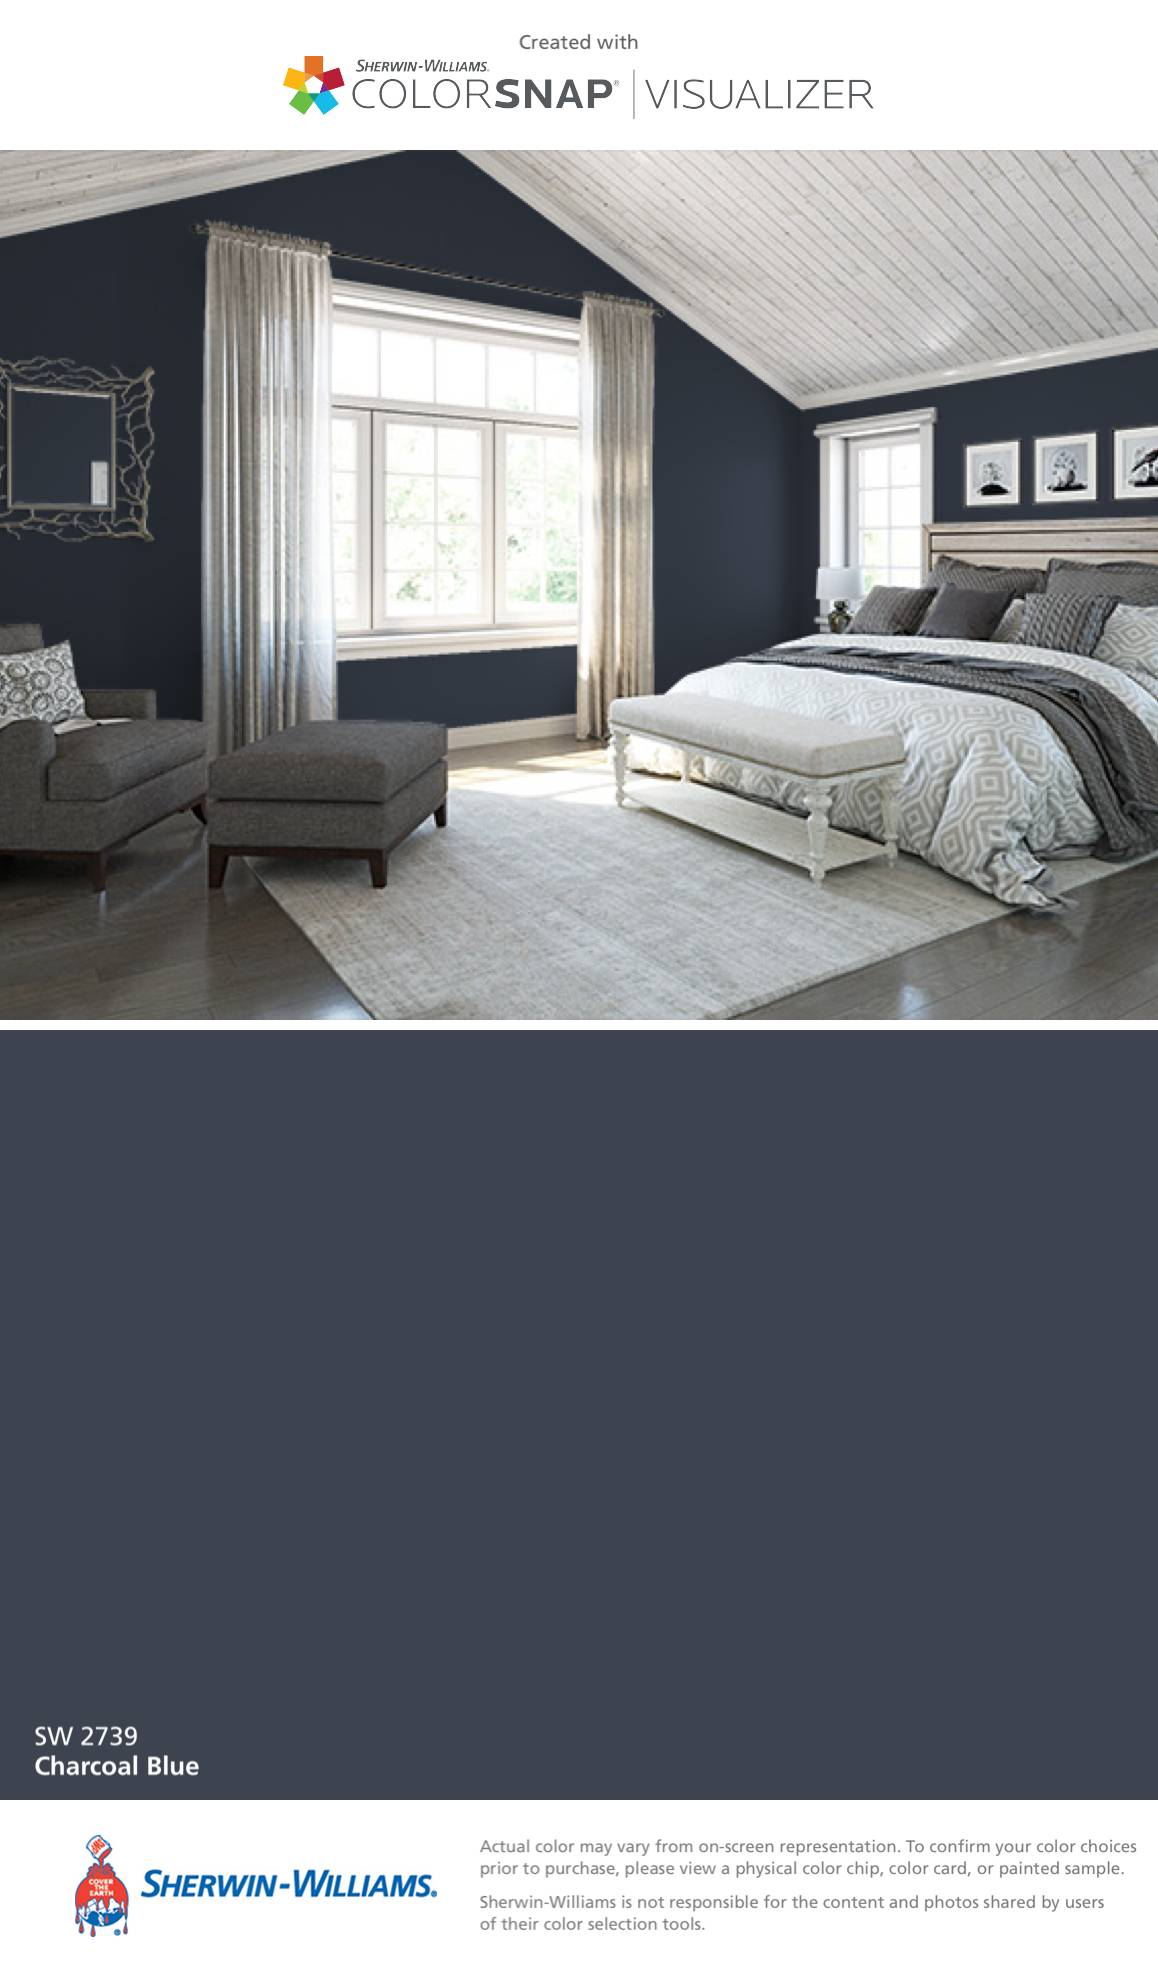 Silver Strand by Sherwin Williams Elegant I Found This Color with Colorsnap Visualizer for iPhone by